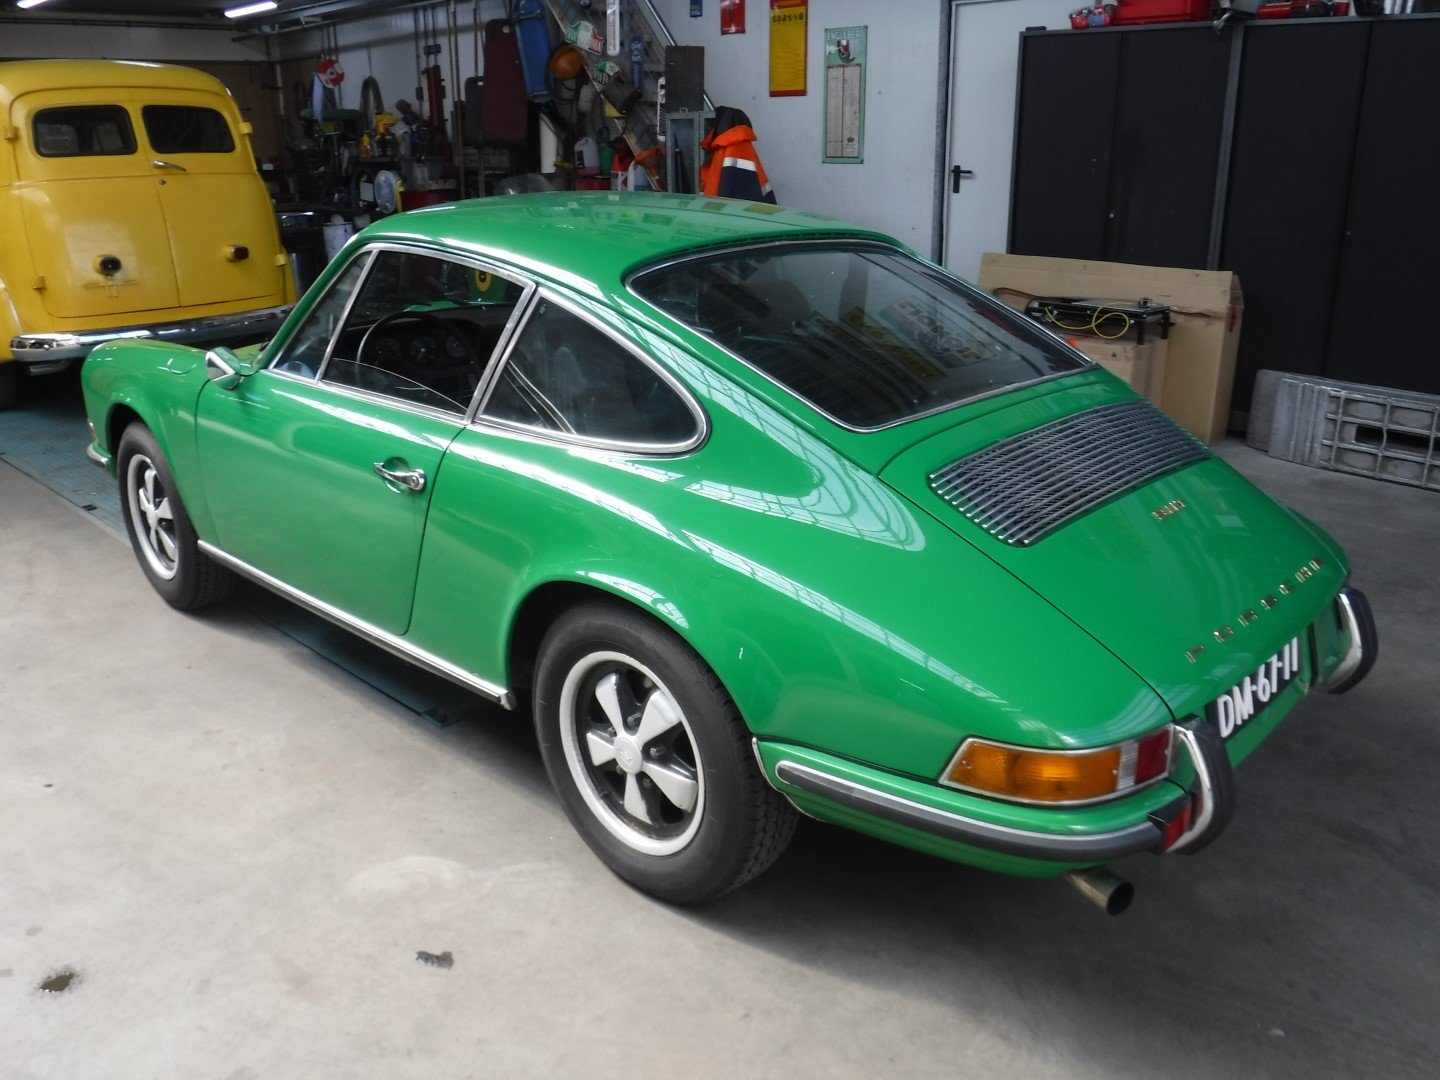 Porsche 911 T  1970   6 cyl.  2.2ltr. For Sale (picture 6 of 6)